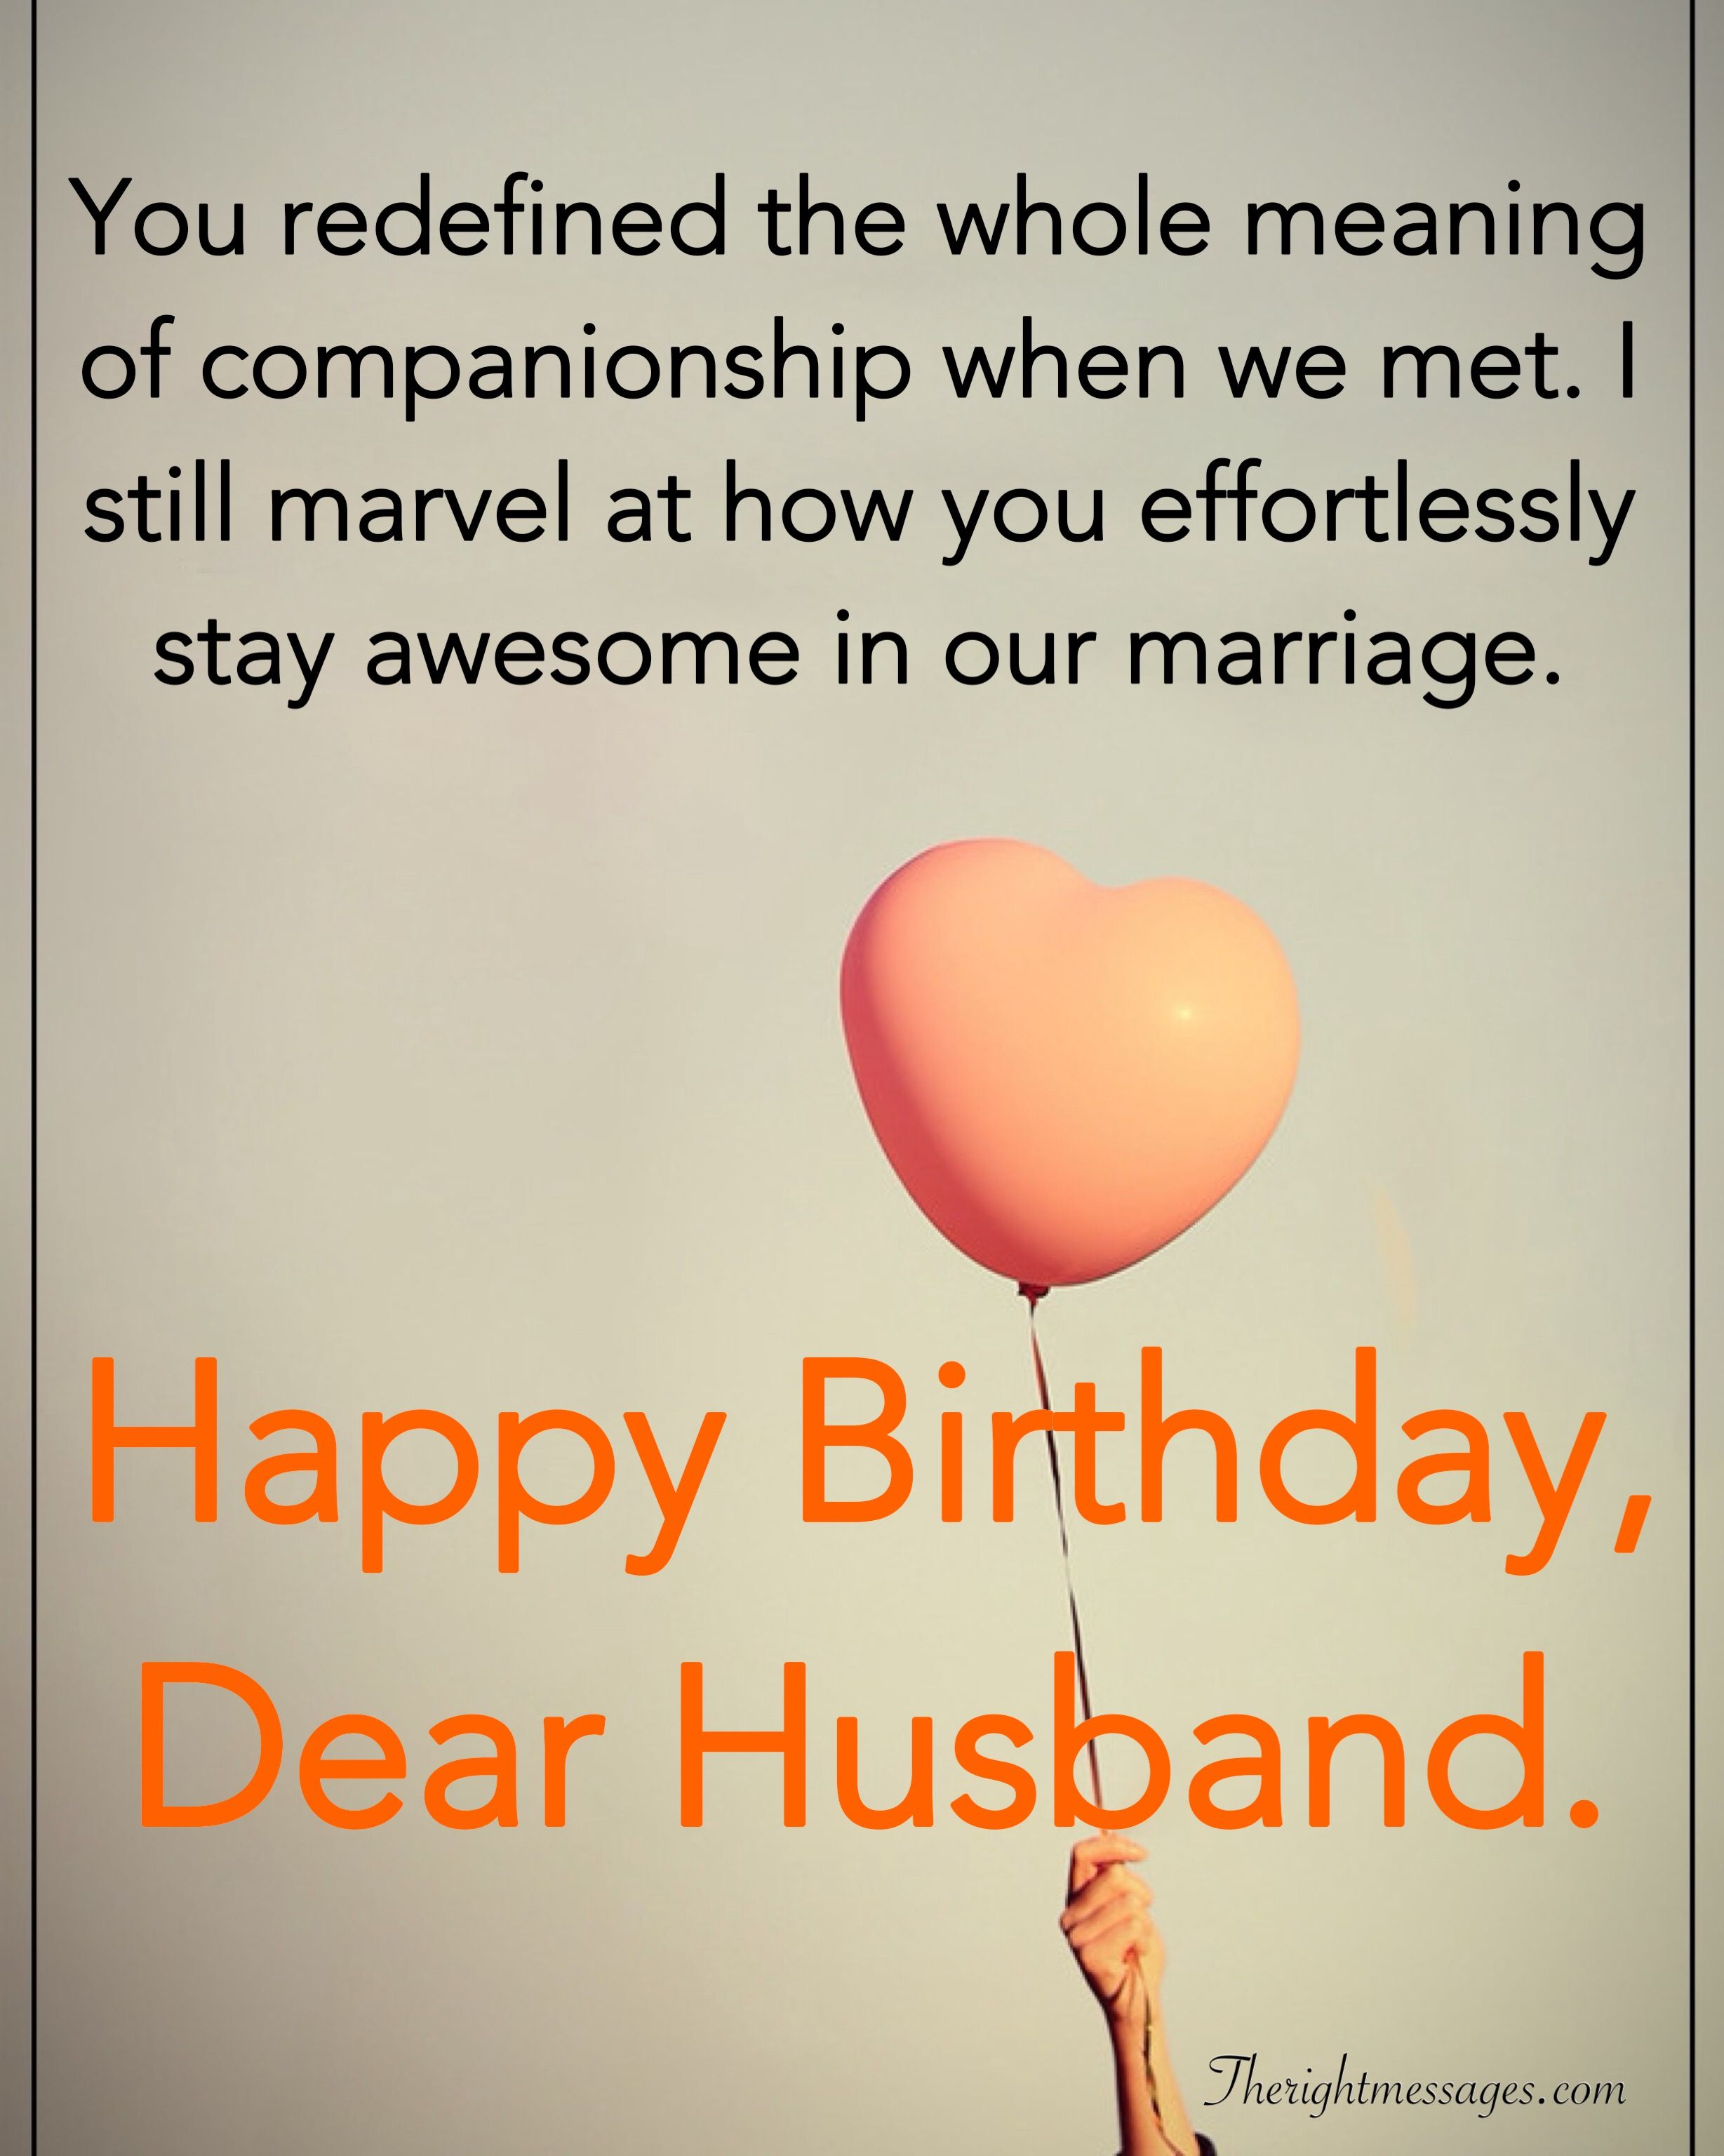 28 Birthday Wishes For Your Husband Romantic Funny Poems The Right Messages Birthday Wish For Husband Happy Birthday Husband Quotes Birthday Wishes Funny